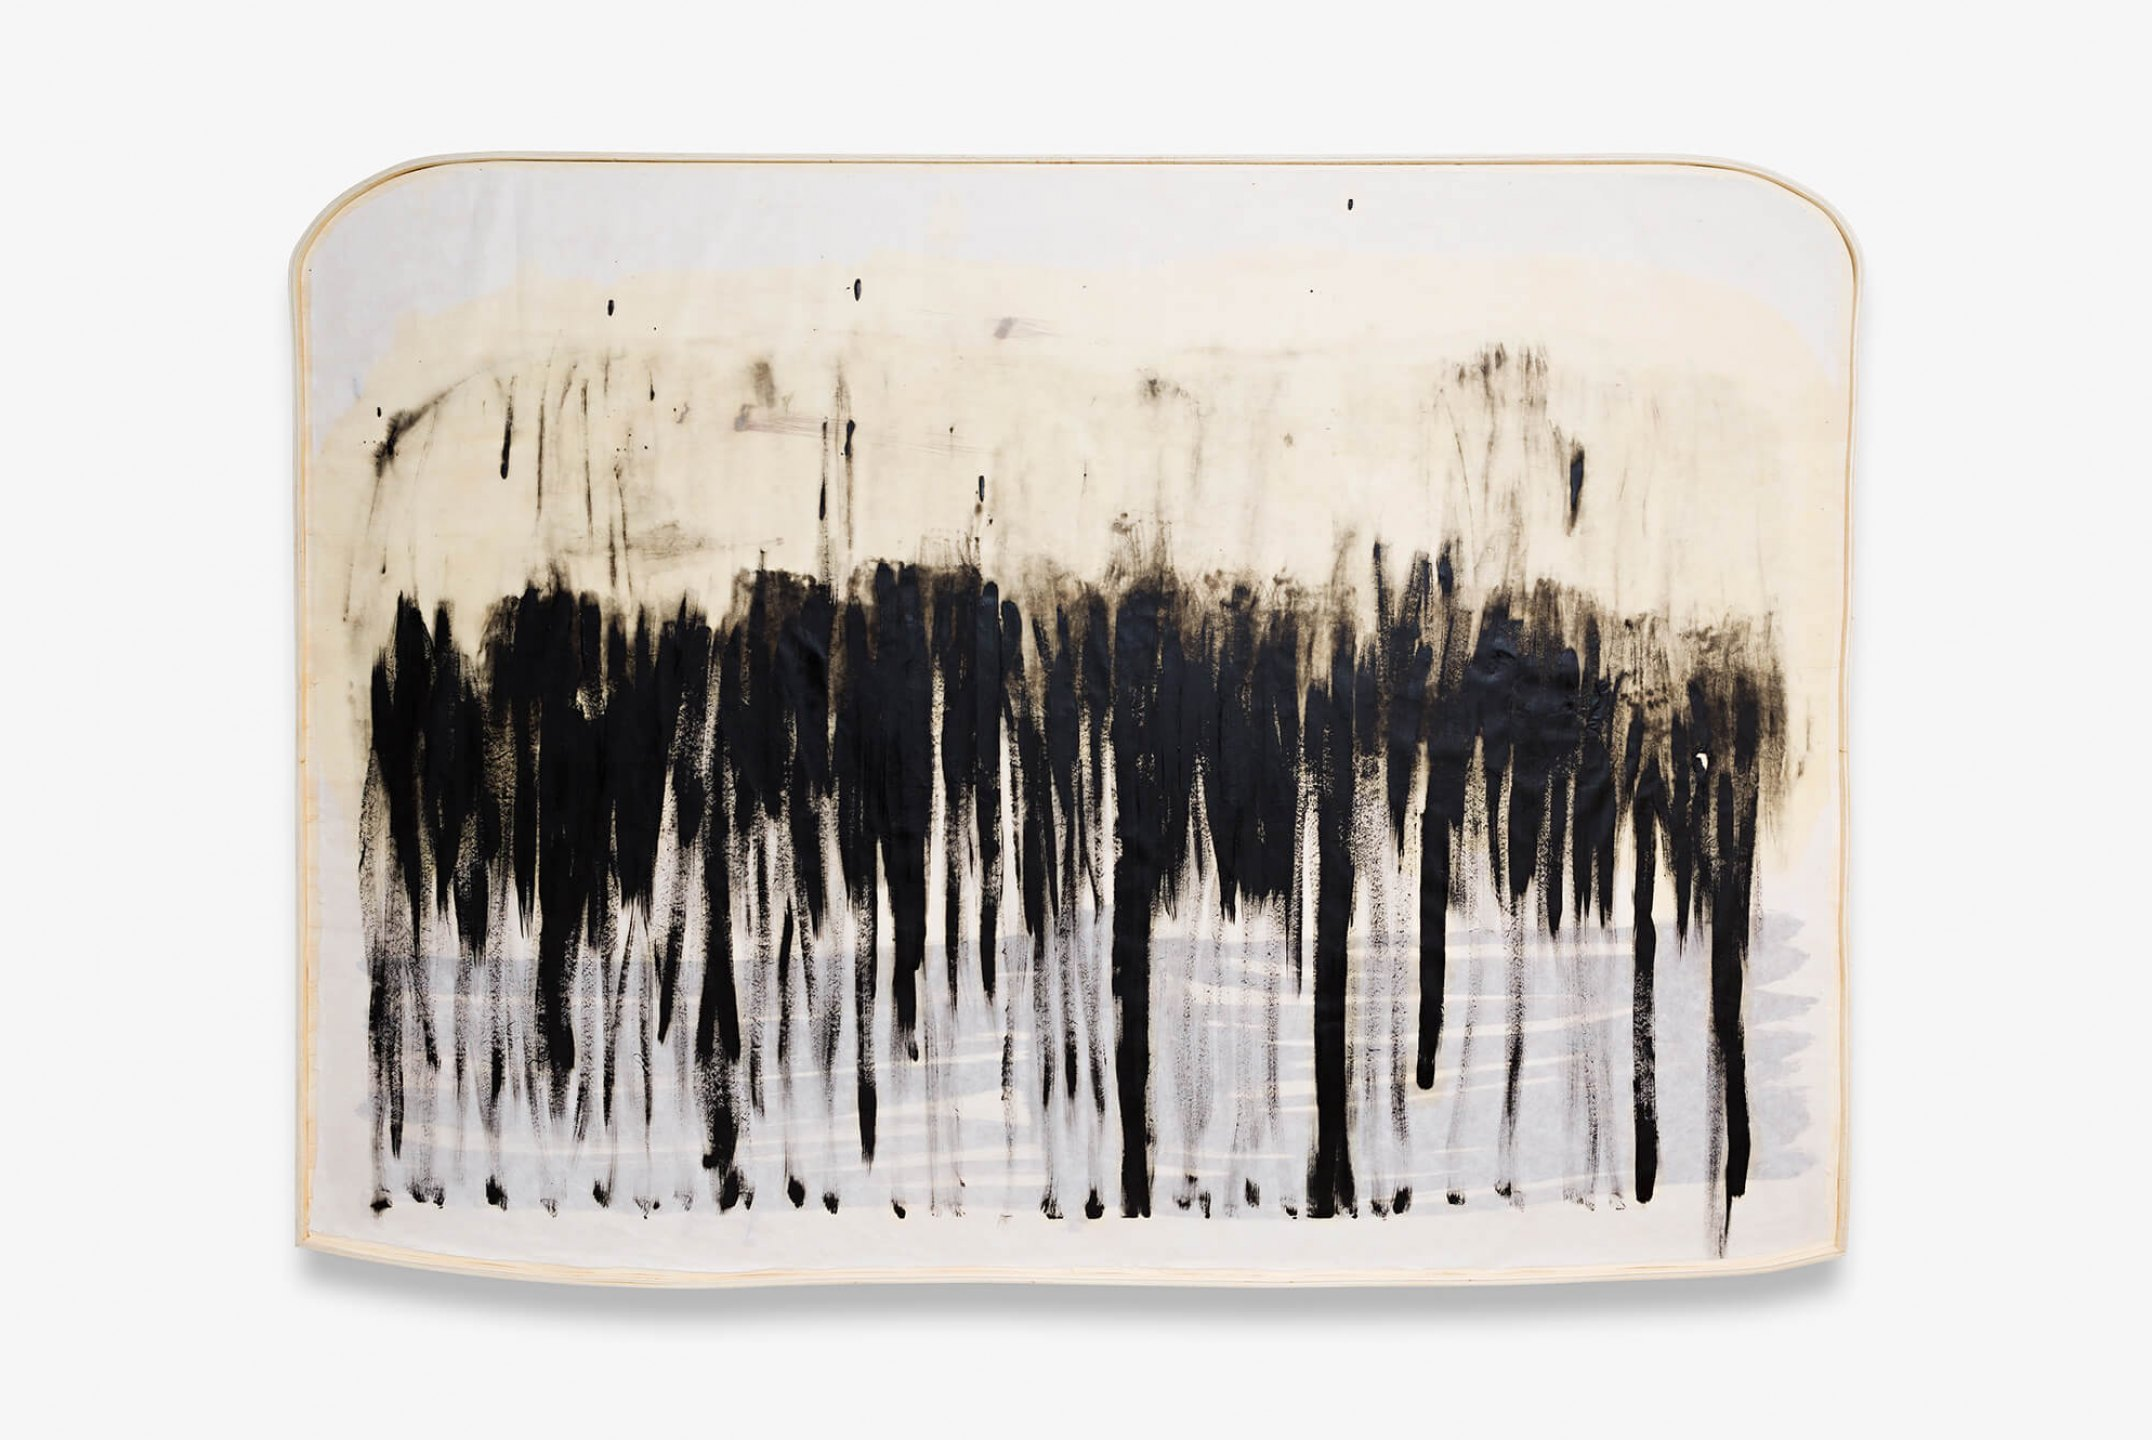 Marina Perez Simão, <em>Untitled,</em> 2014, oil on korean paper, &nbsp;141 × 188 × 4,5 cm&nbsp; - Mendes Wood DM